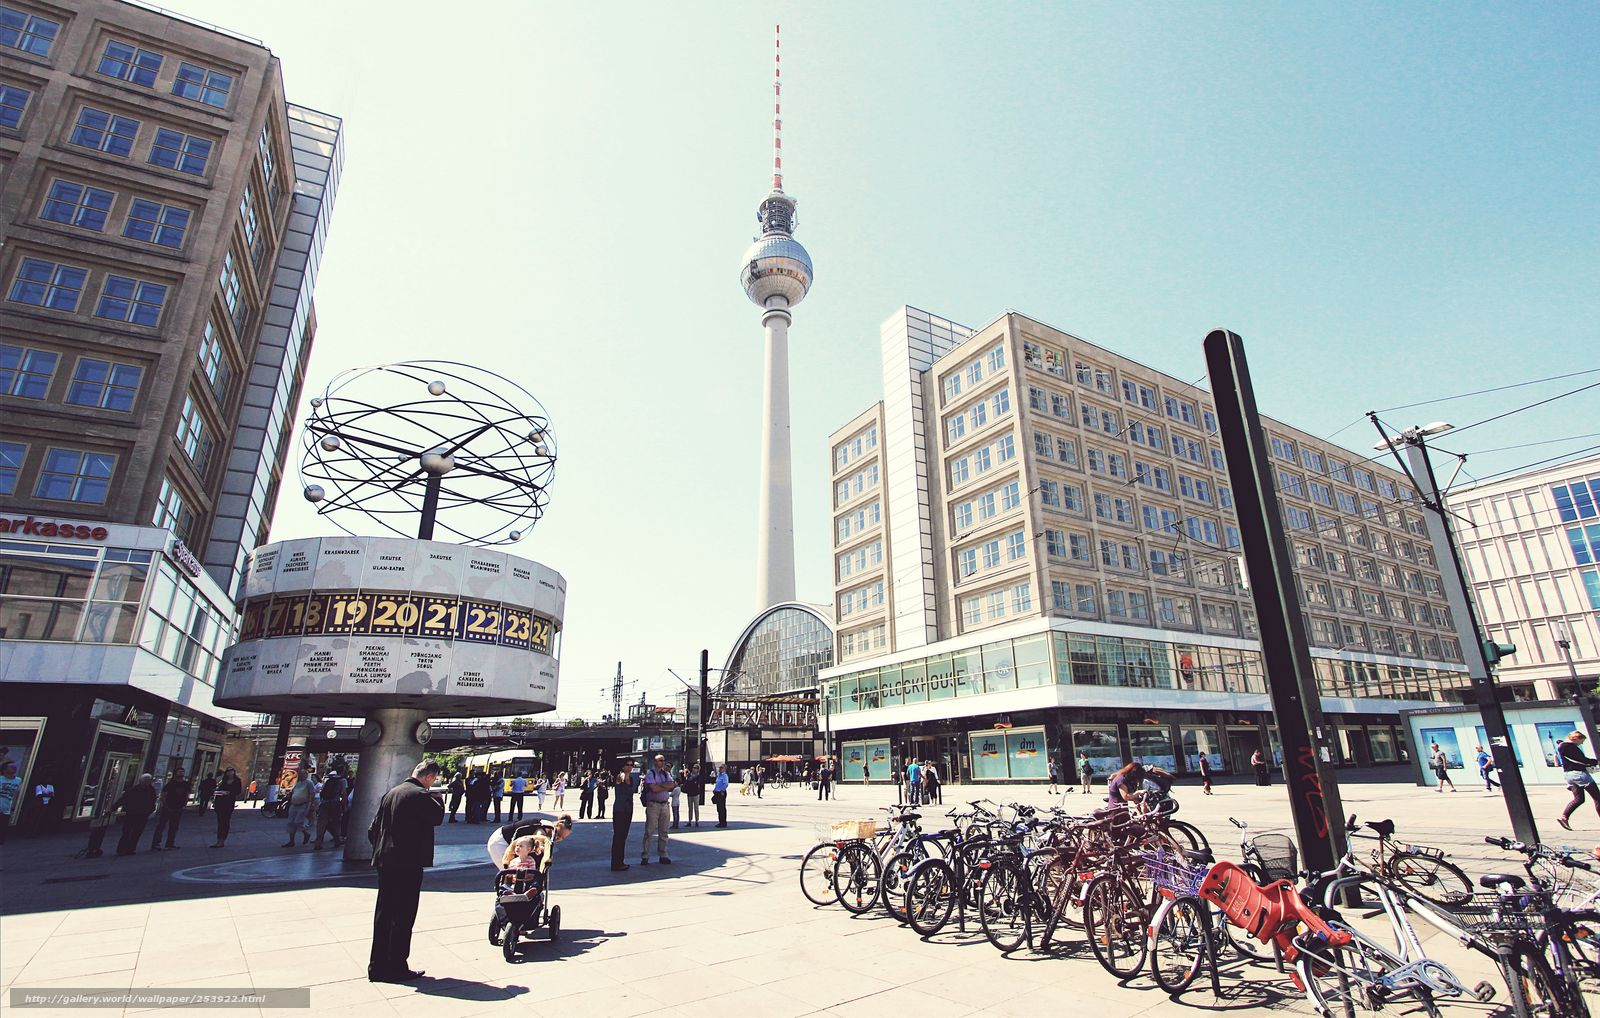 River Alexander s Gallery berlin alexanderplatz germaniya gorod berlin plosh X www wallpapers